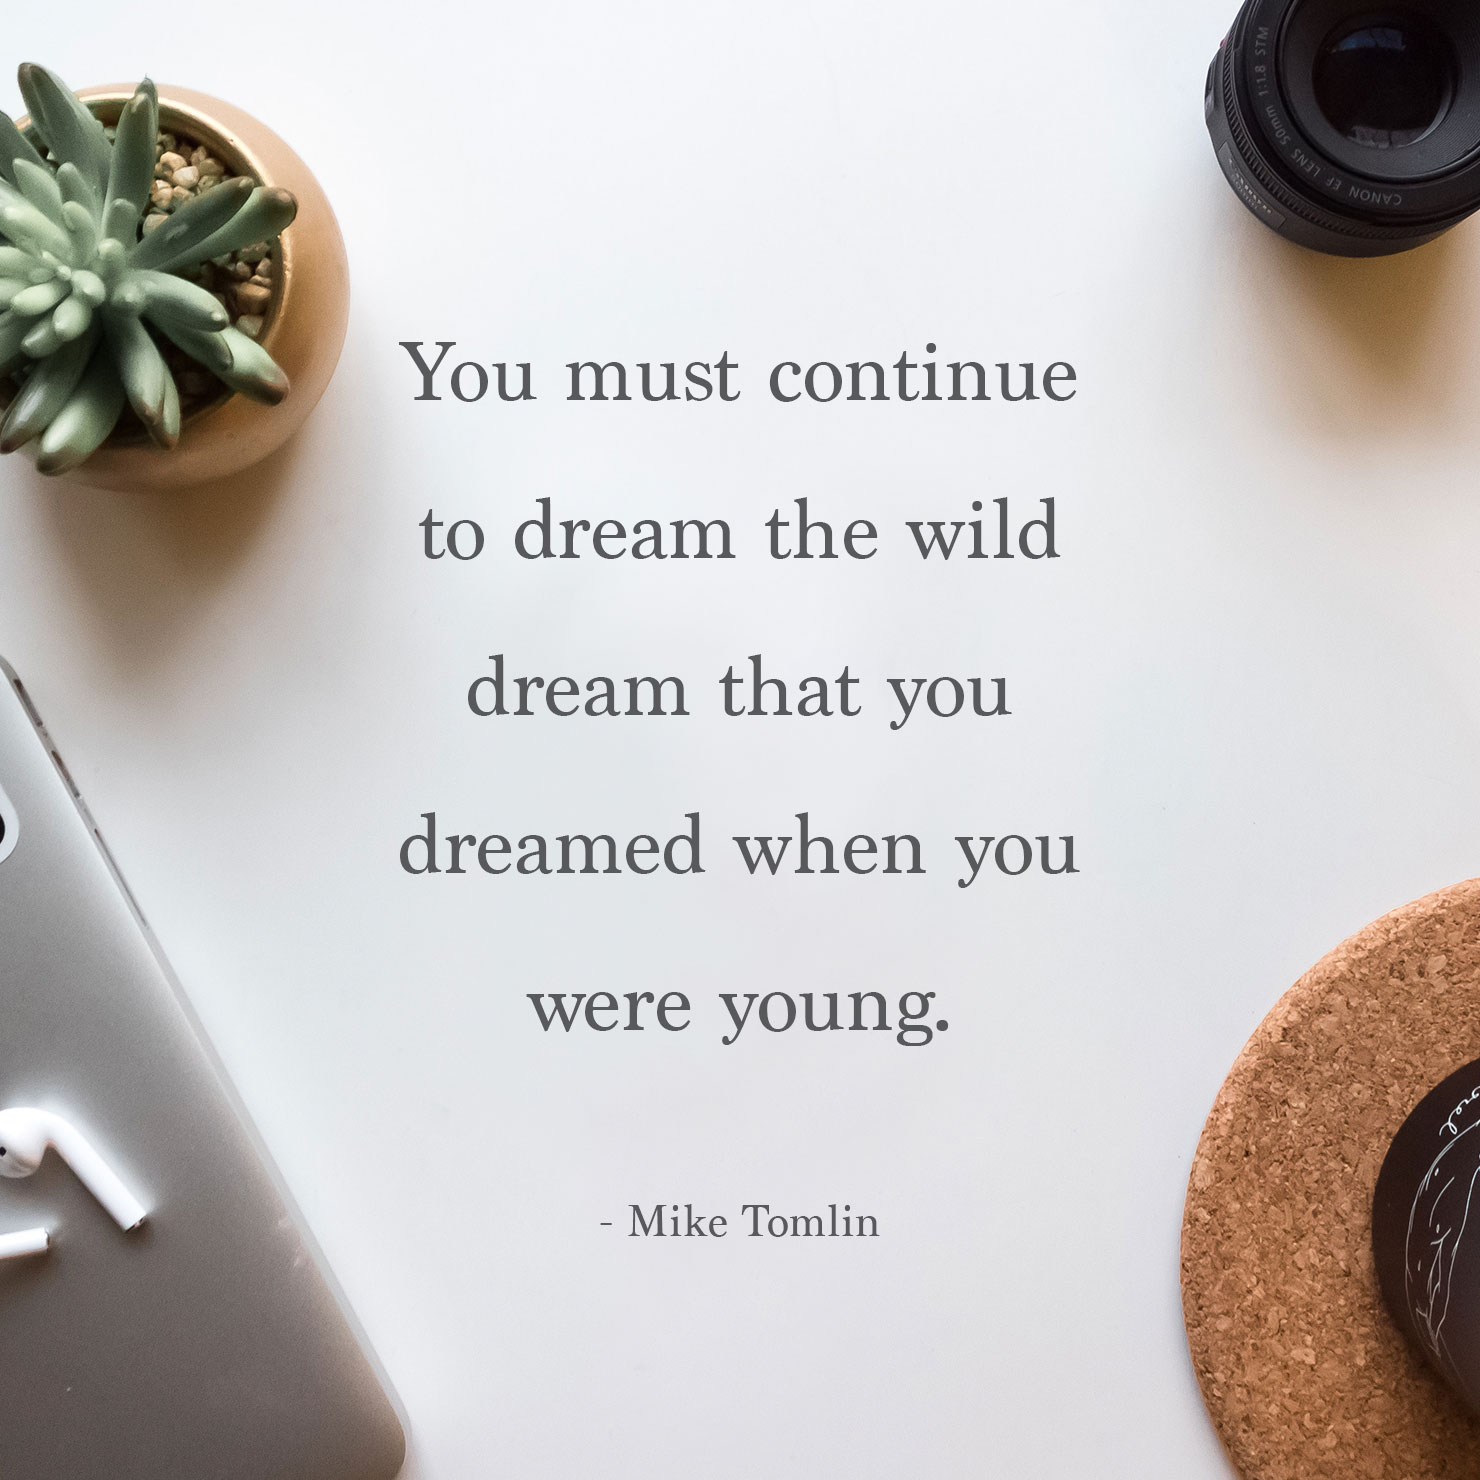 from parents graduation quote: you must continue to dream the wild dream that you dreamed when you were young - Mike Tomlin